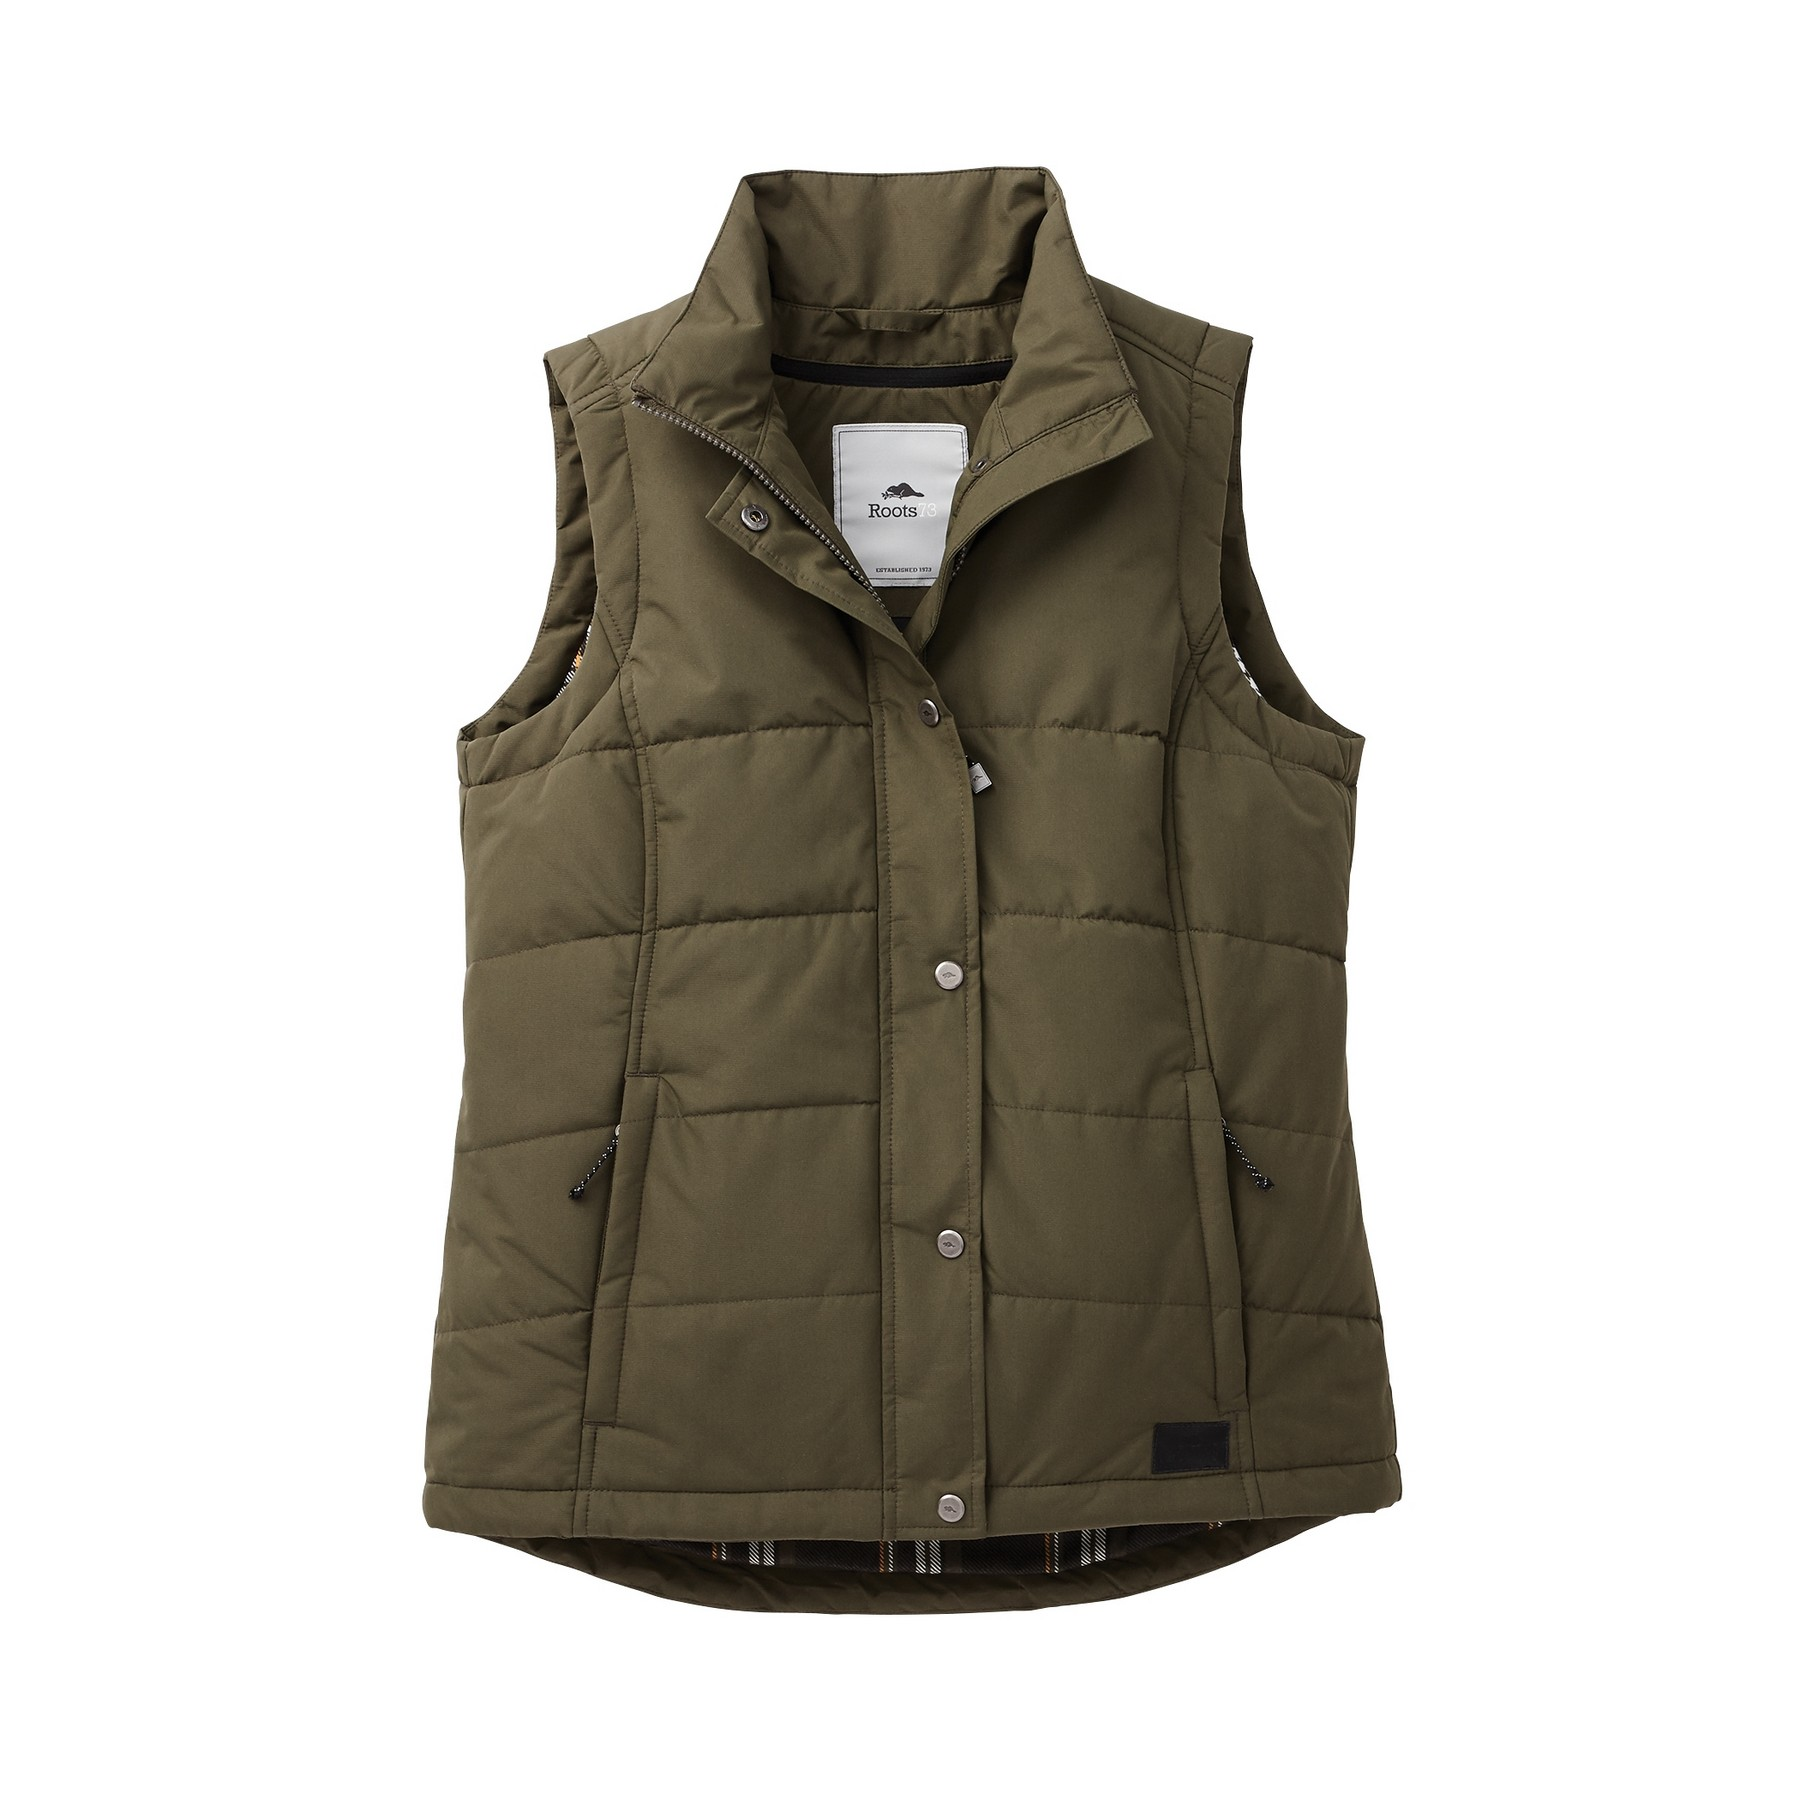 Traillake Insulated Women's Vest, #99410 - Embroidered